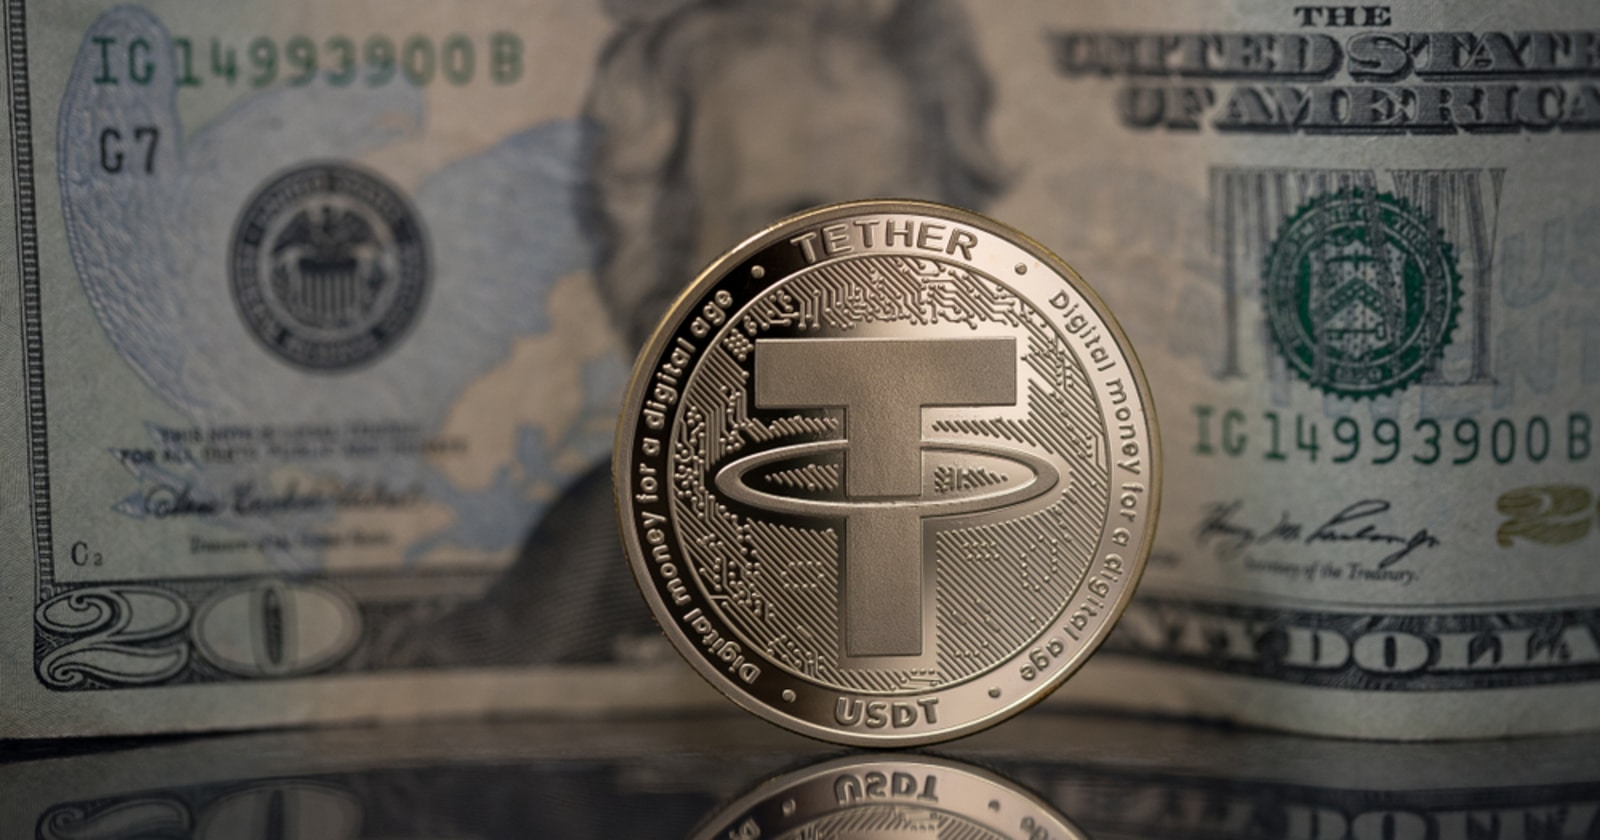 $100 million worth of Tether has been transferred from Tron to Ethereum